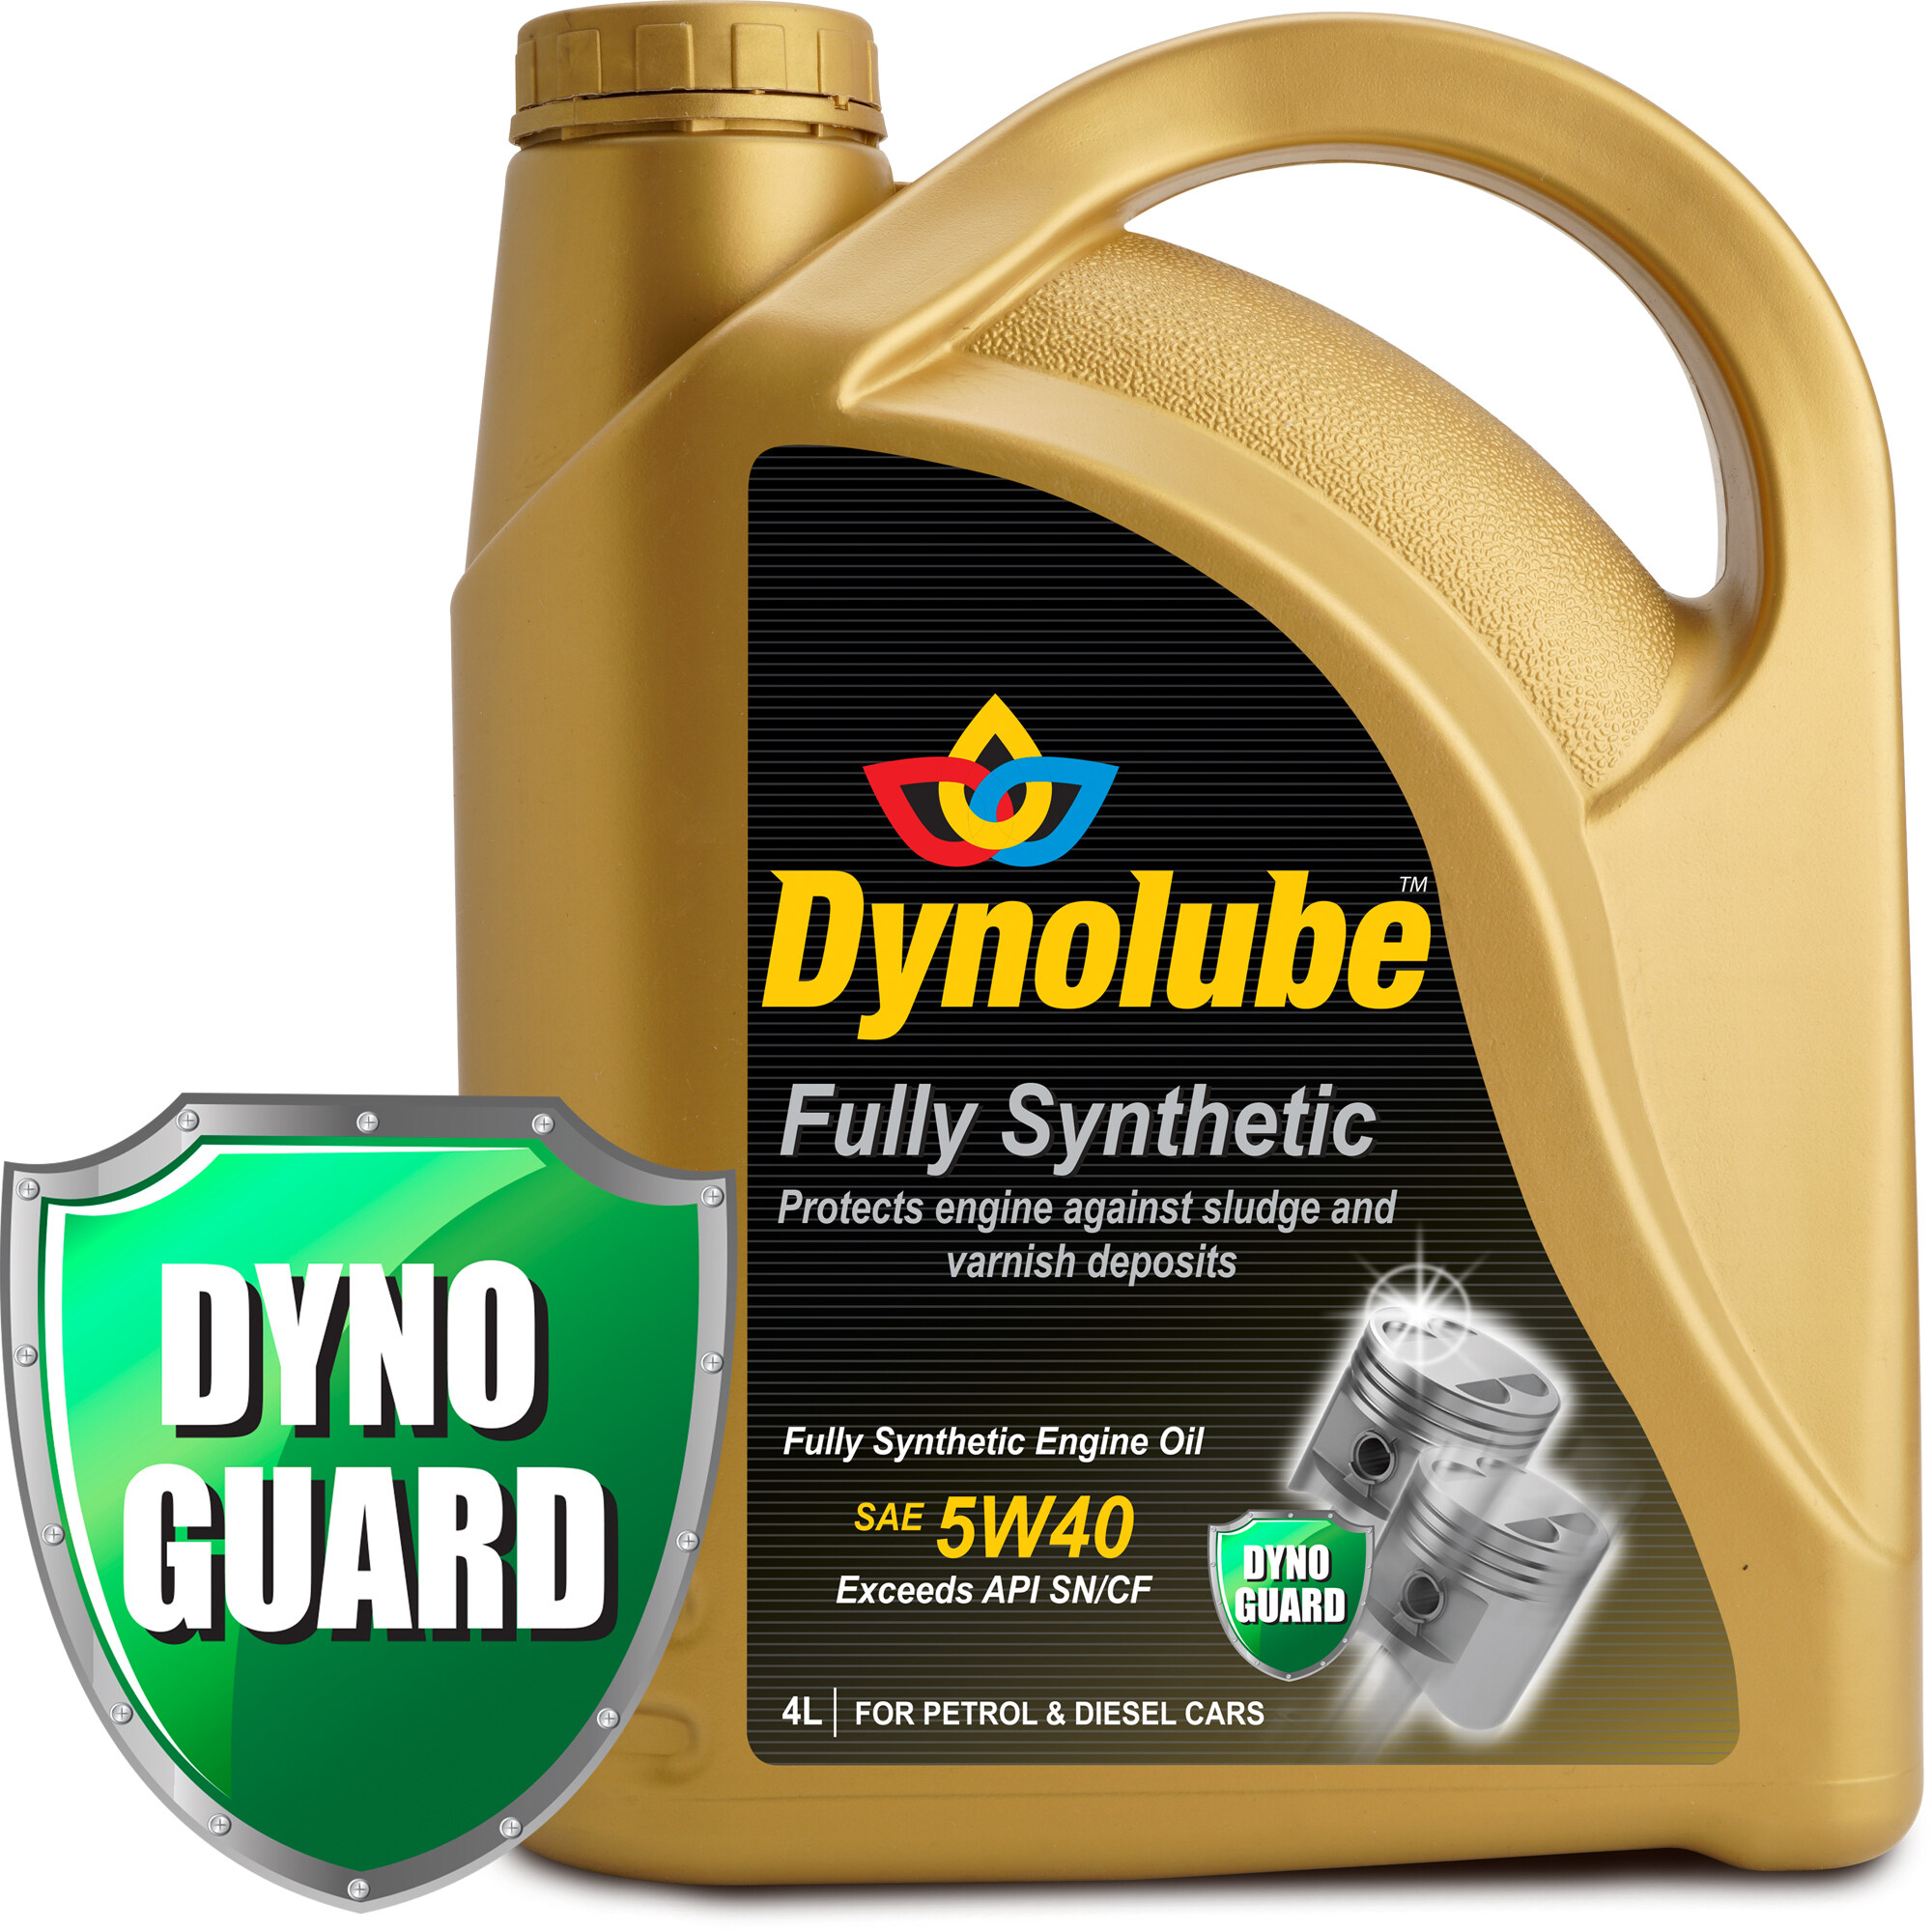 Dynolube 5W40 SN/CF Fully Synthetic 4Liter reviews, ratings and best price in KL, Selangor and Malaysia